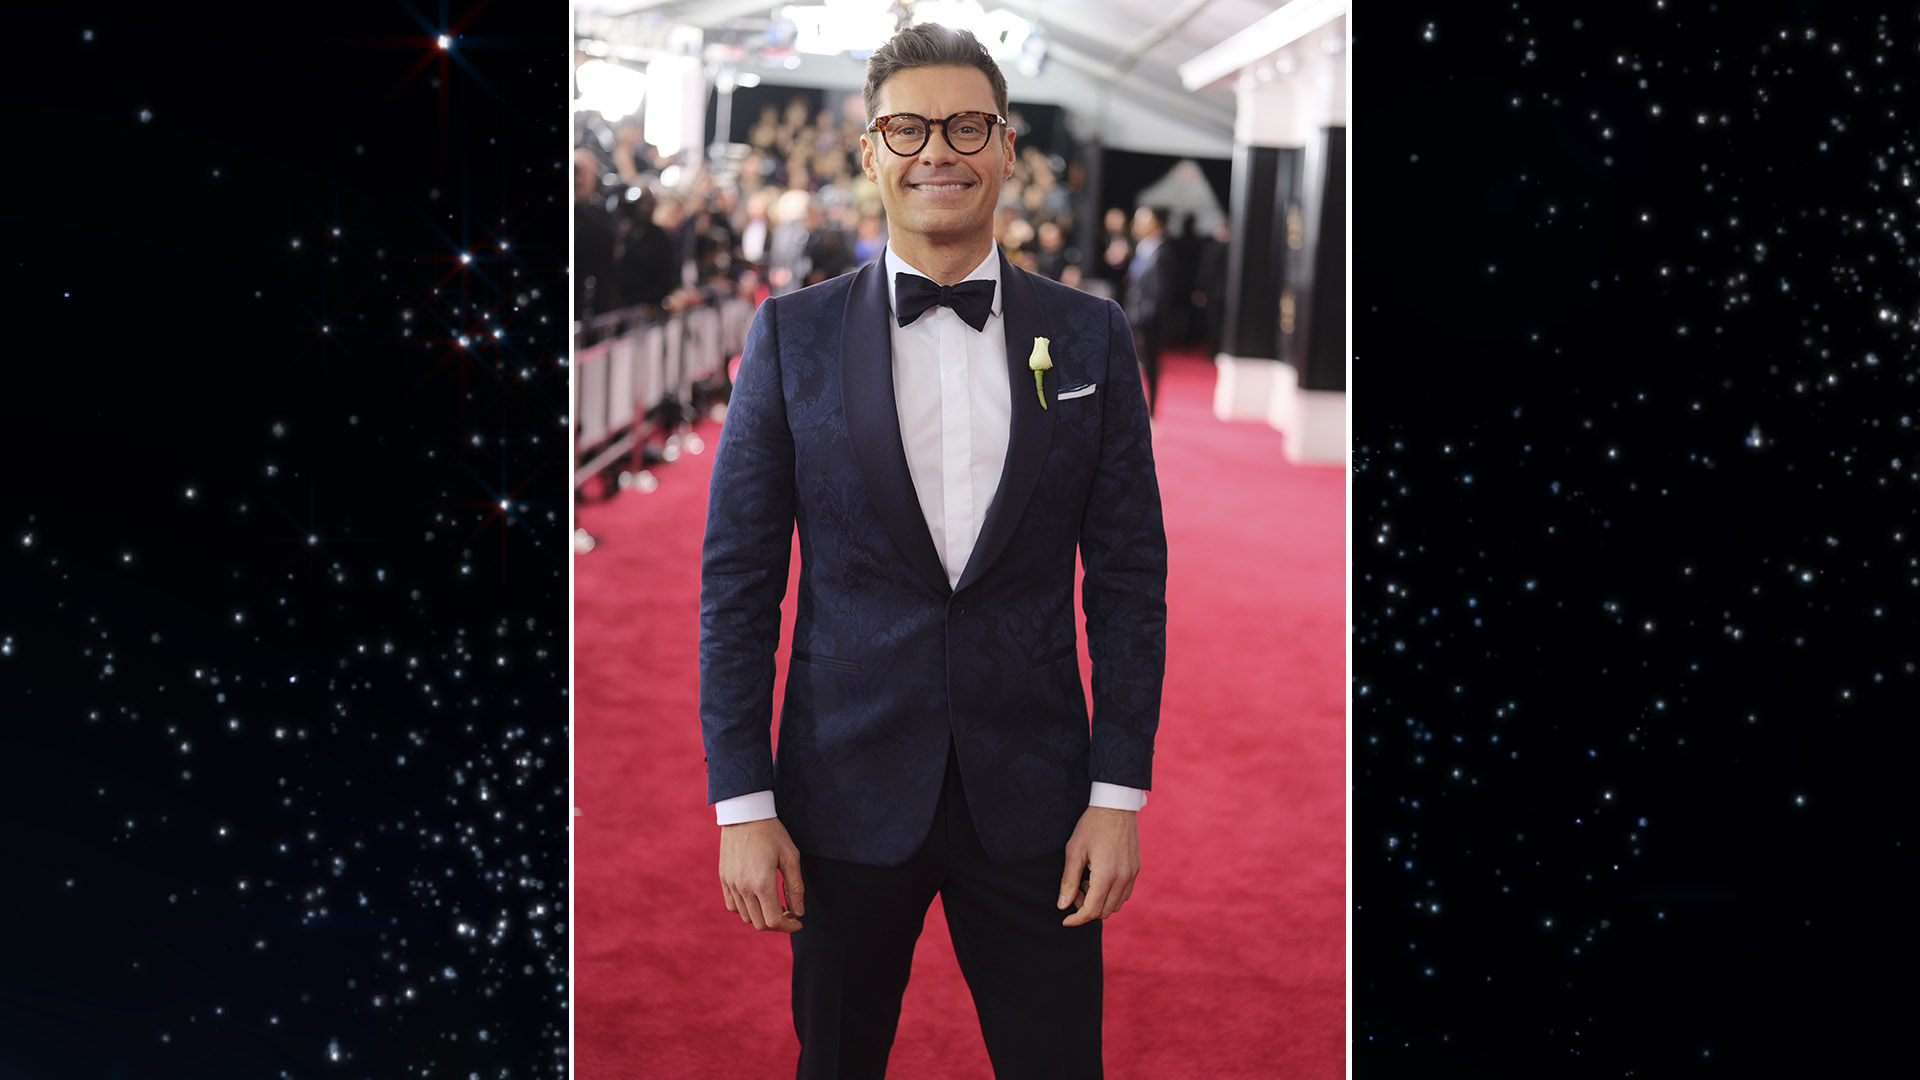 Ryan Seacrest poses proudly in a suit designed by Ryan Seacrest Distinction, the TV personality's own menswear line.